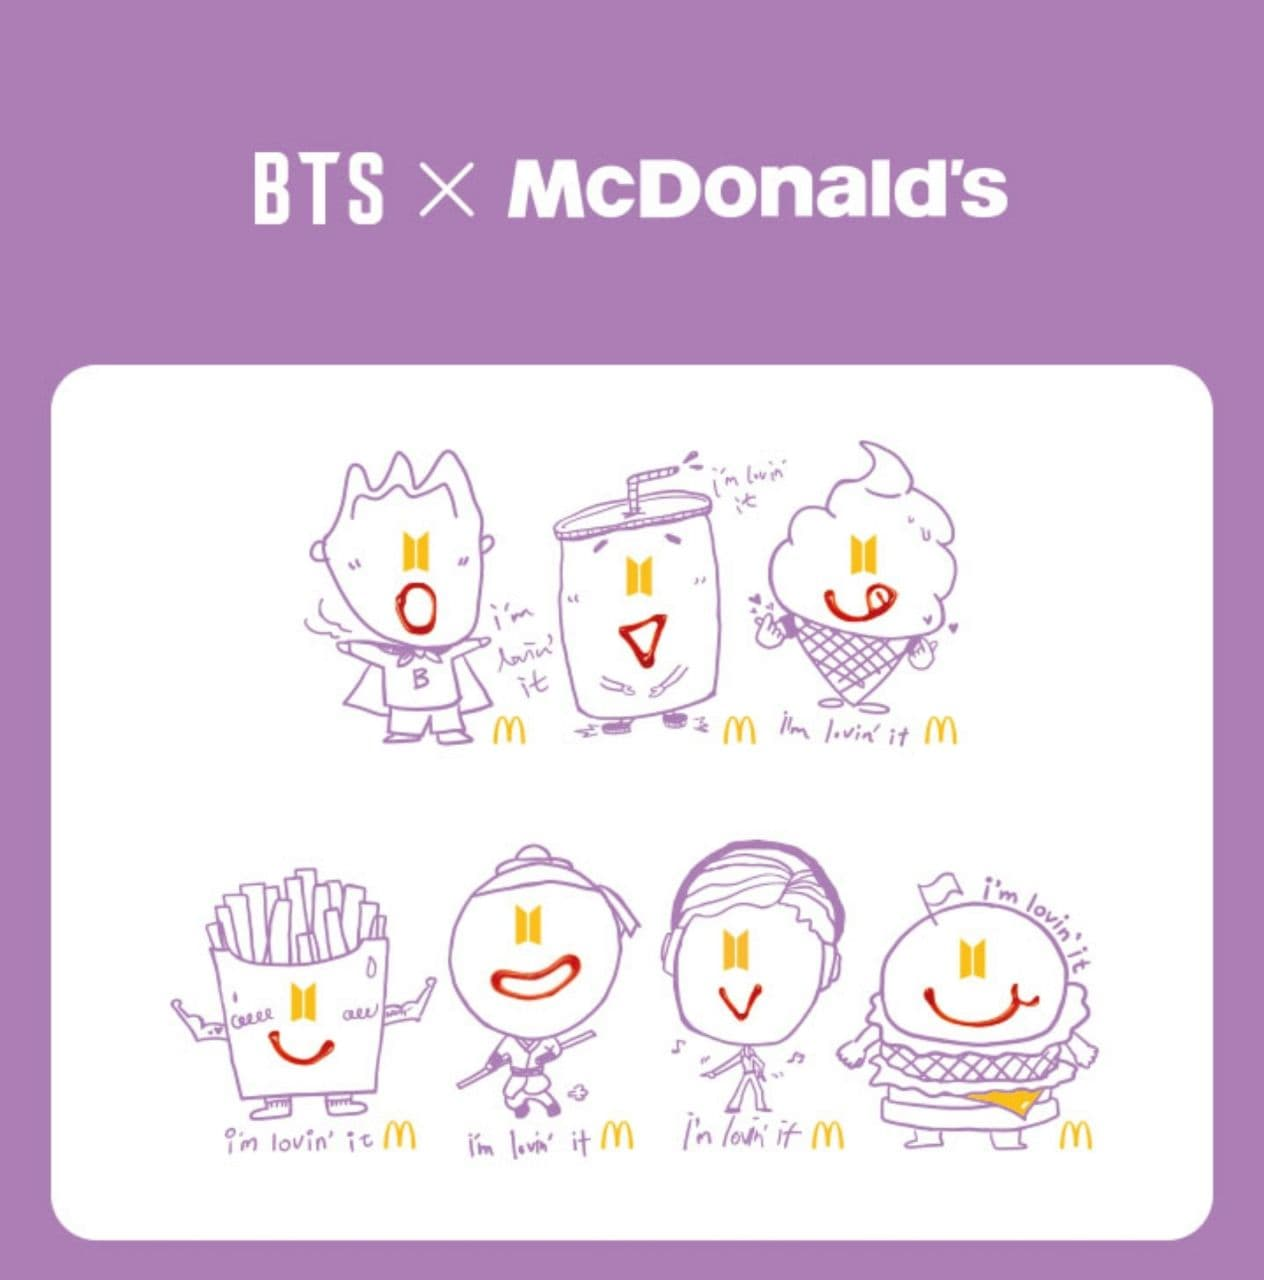 bts mcdonald collection - bts characters